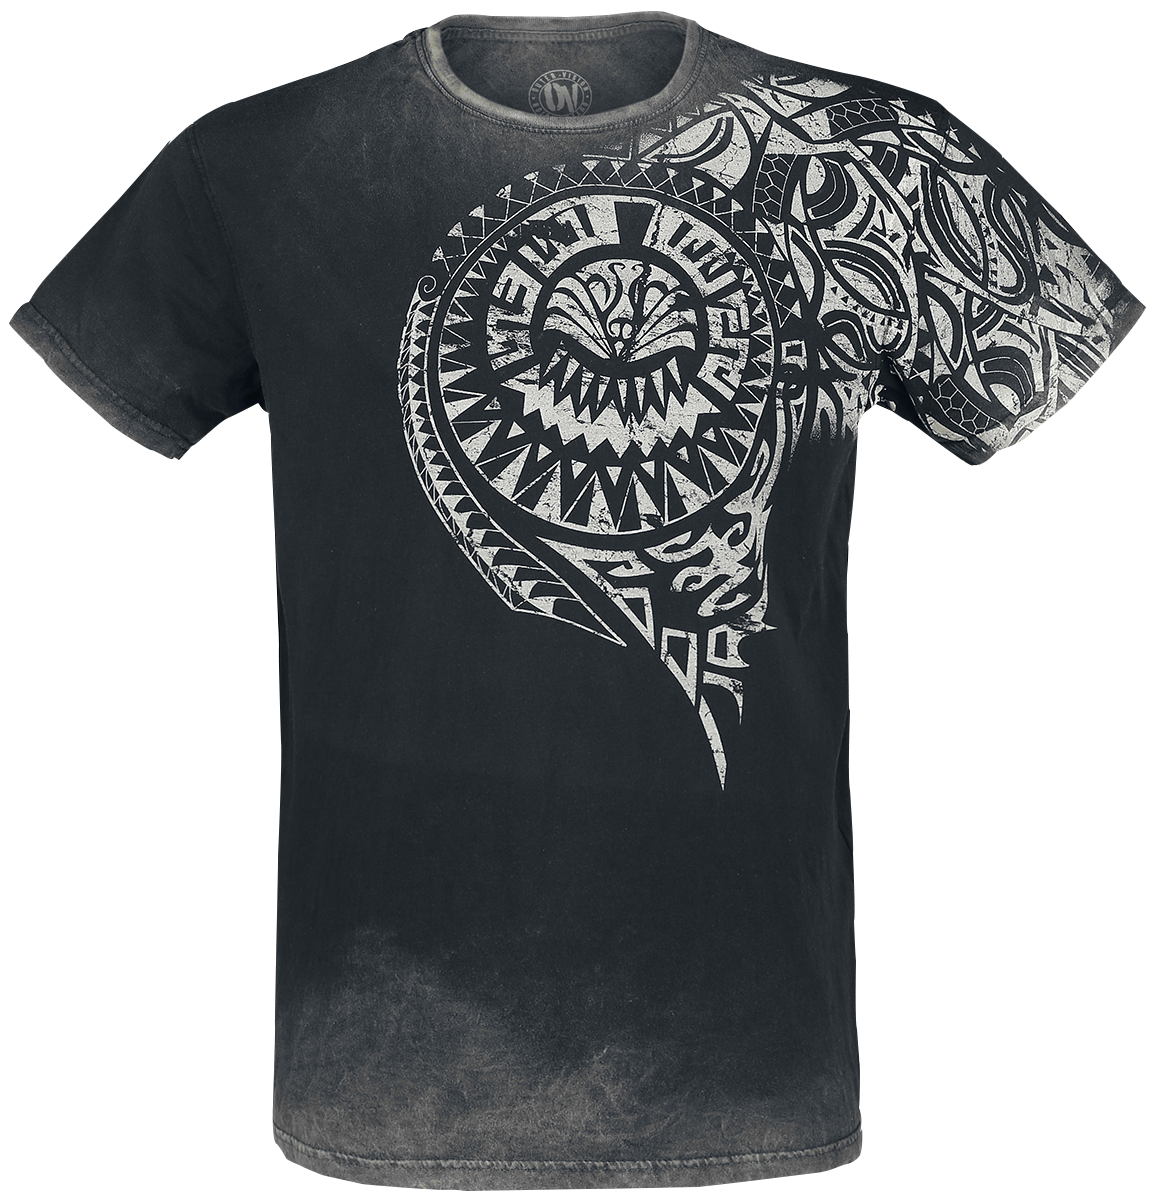 Outer Vision - Burned Tattoo - T-Shirt - grey image